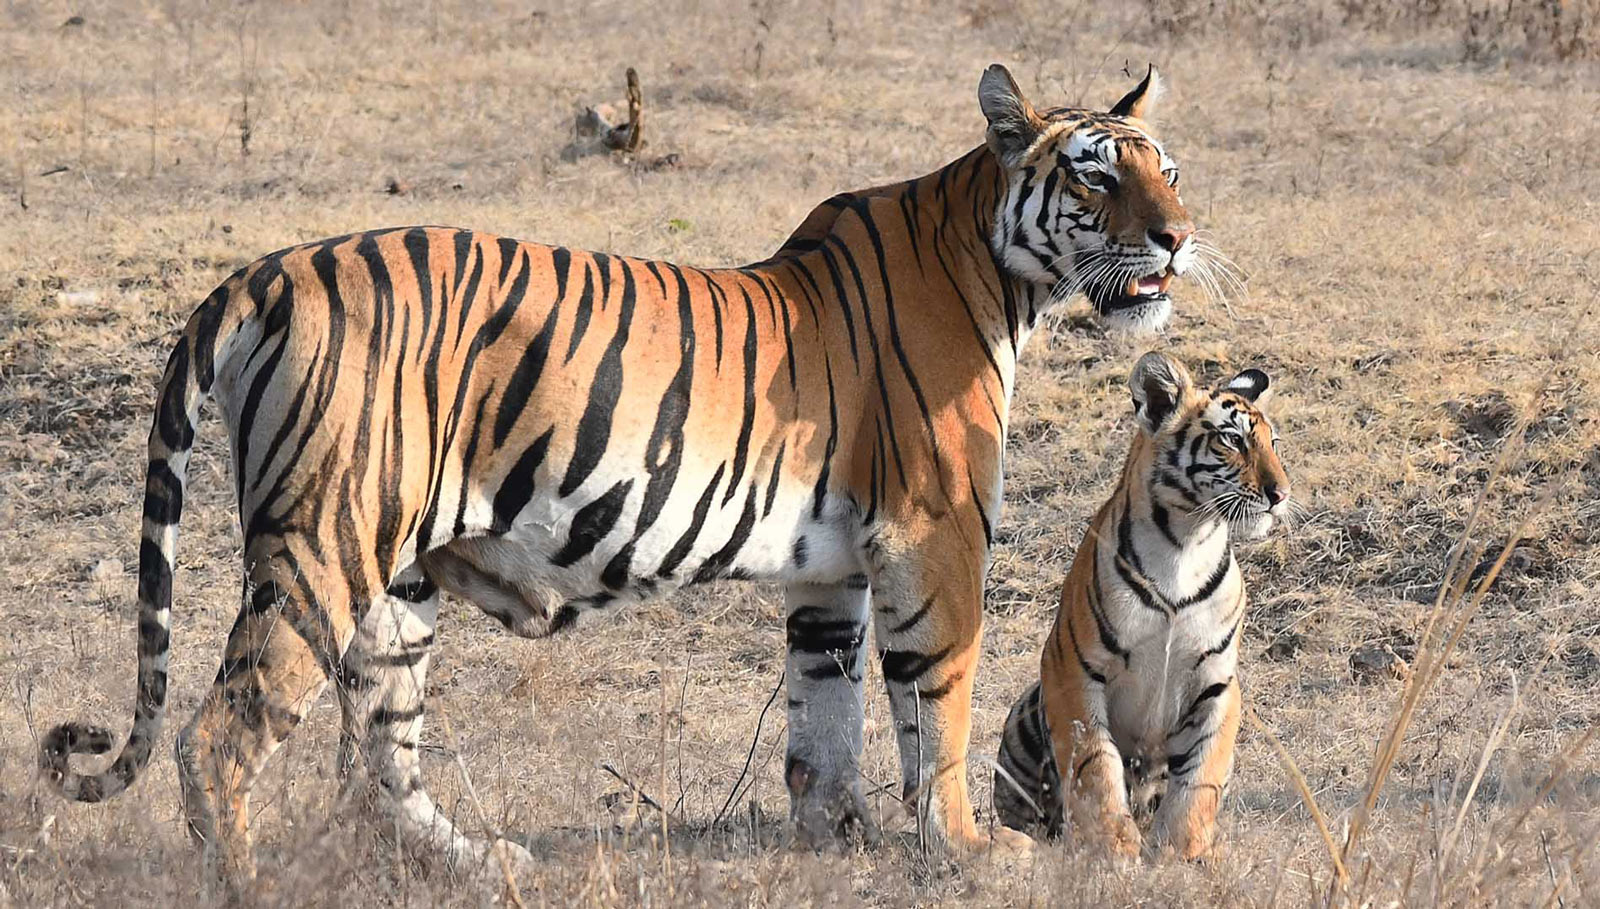 Impressive Bengal tiger with baby tiger cub in the forest, Kanha National Park, India